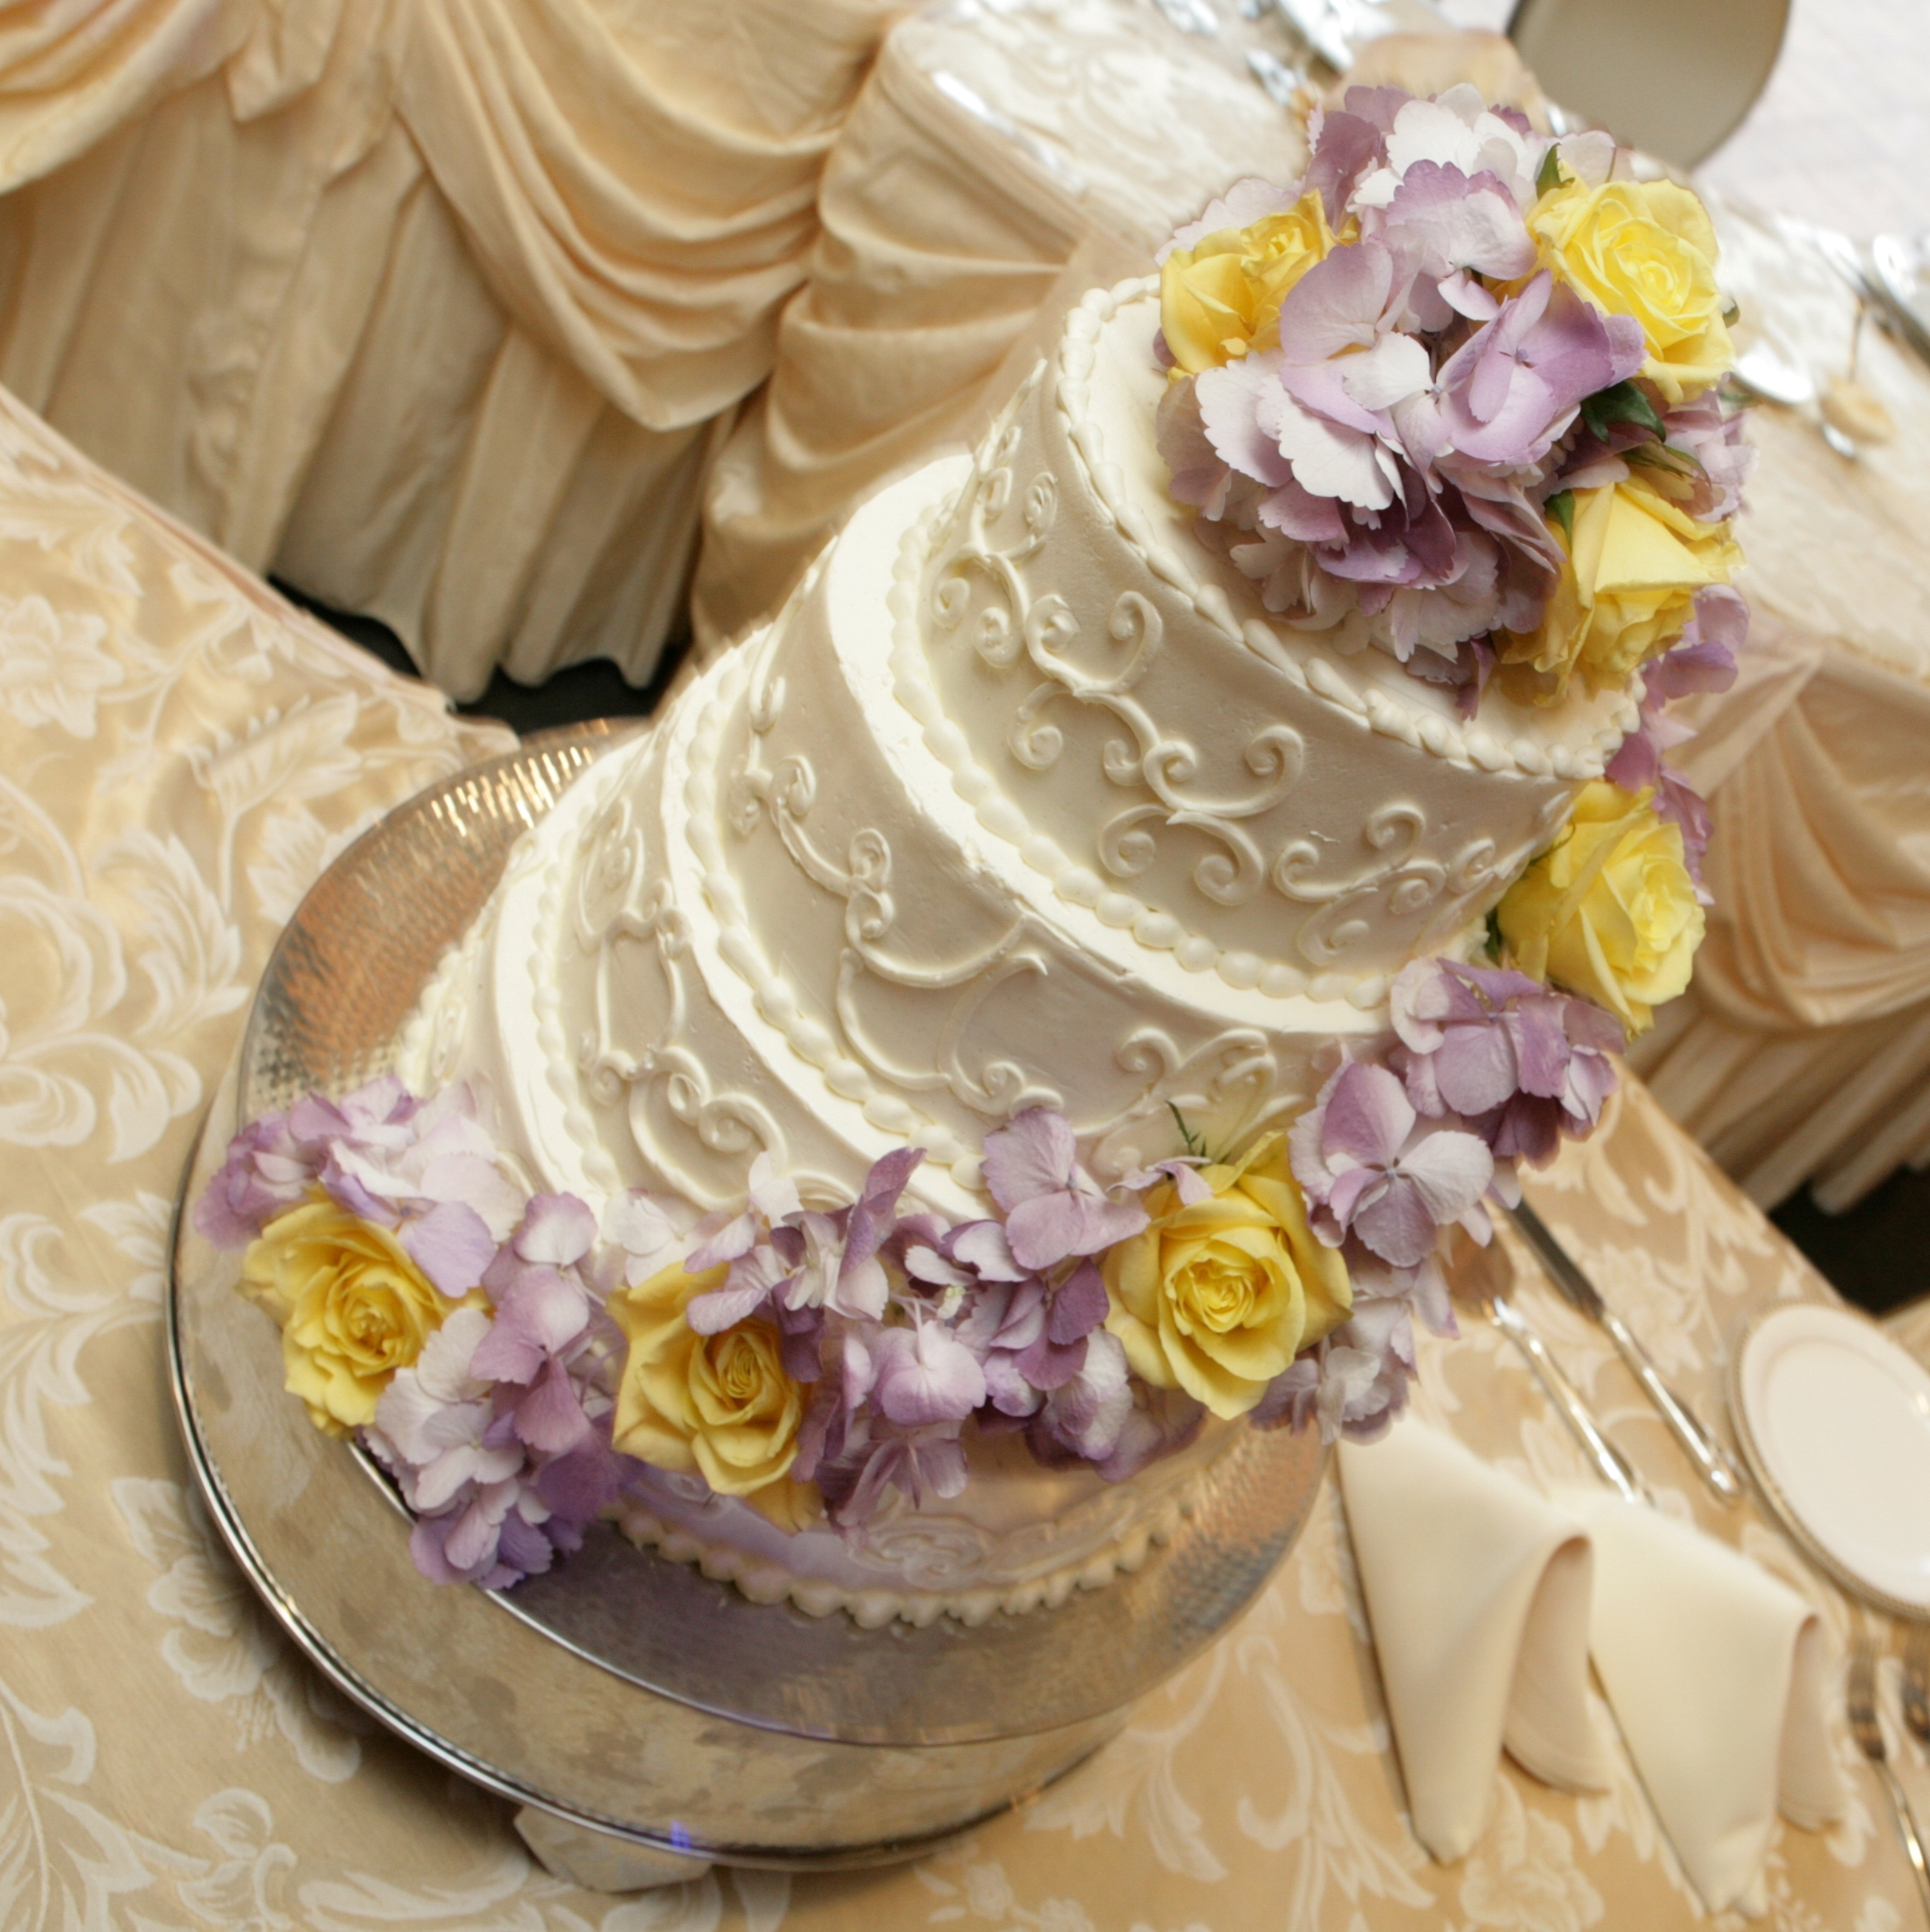 Flowers & Decor, Cakes, yellow, purple, cake, Flowers, Roses, Wedding, And, Hydrangea, Lavender, Yellows, Monday morning flowers